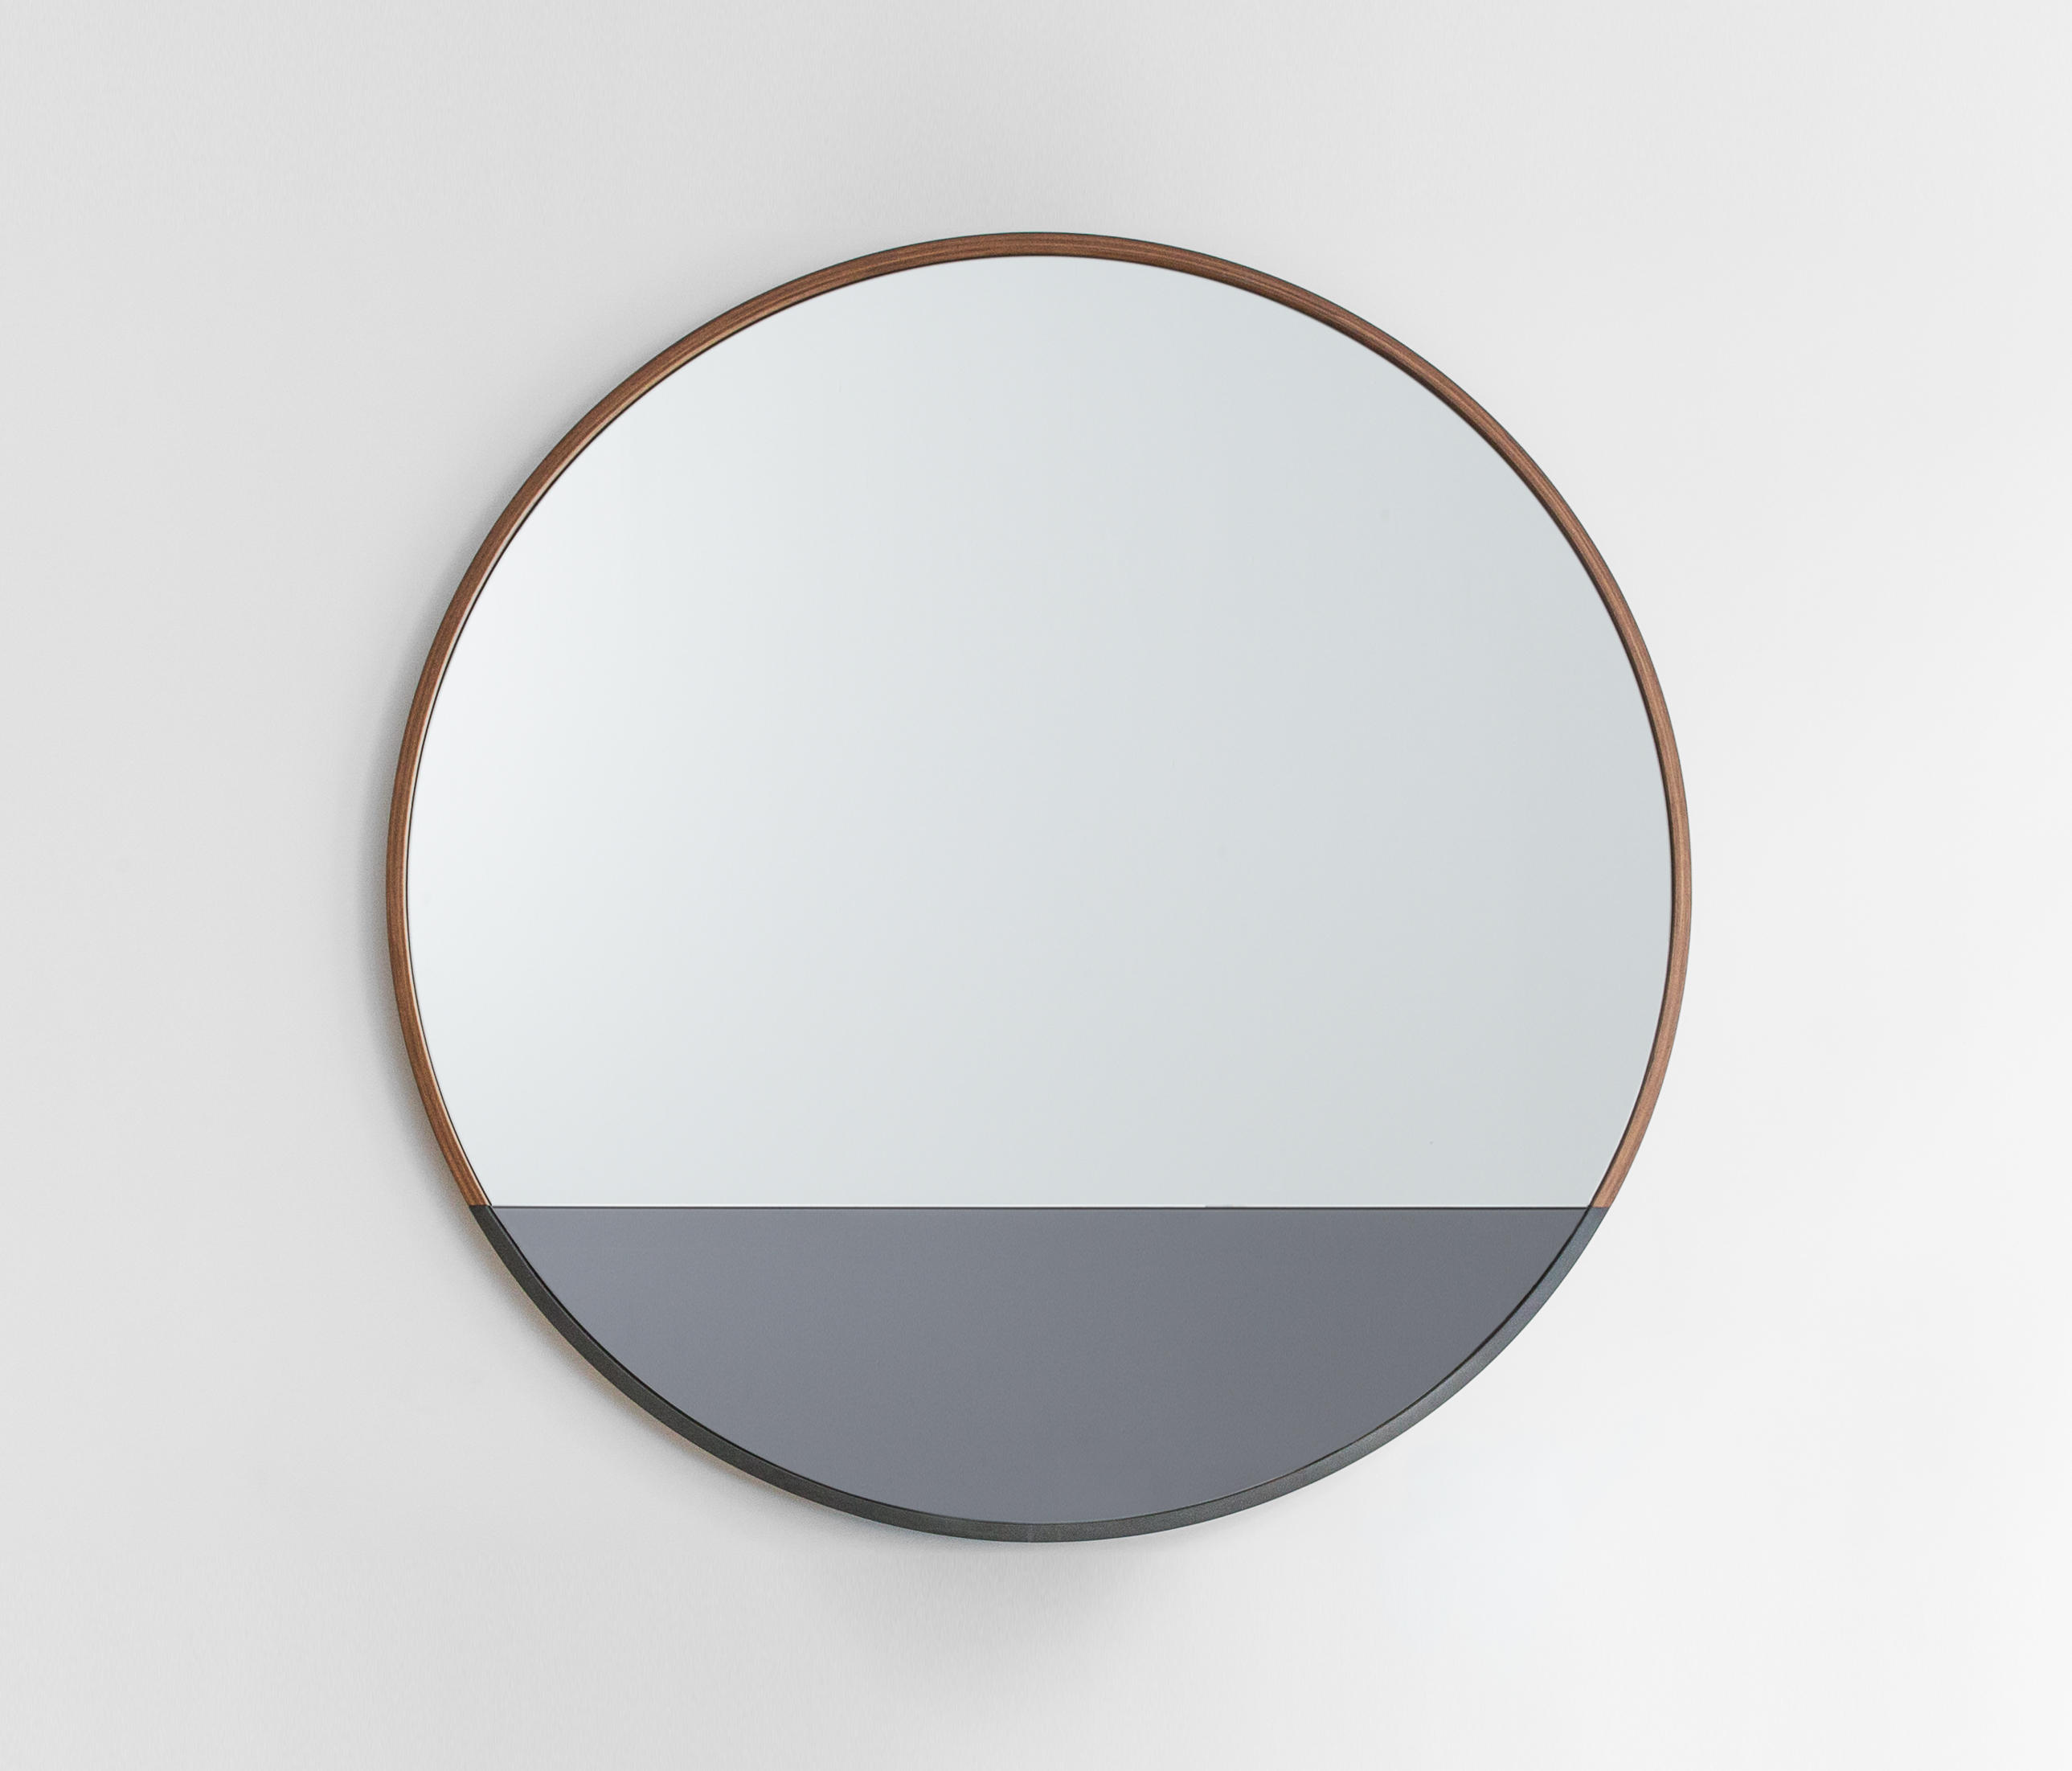 Waterline mirror round mirrors from uhuru design for Round mirror